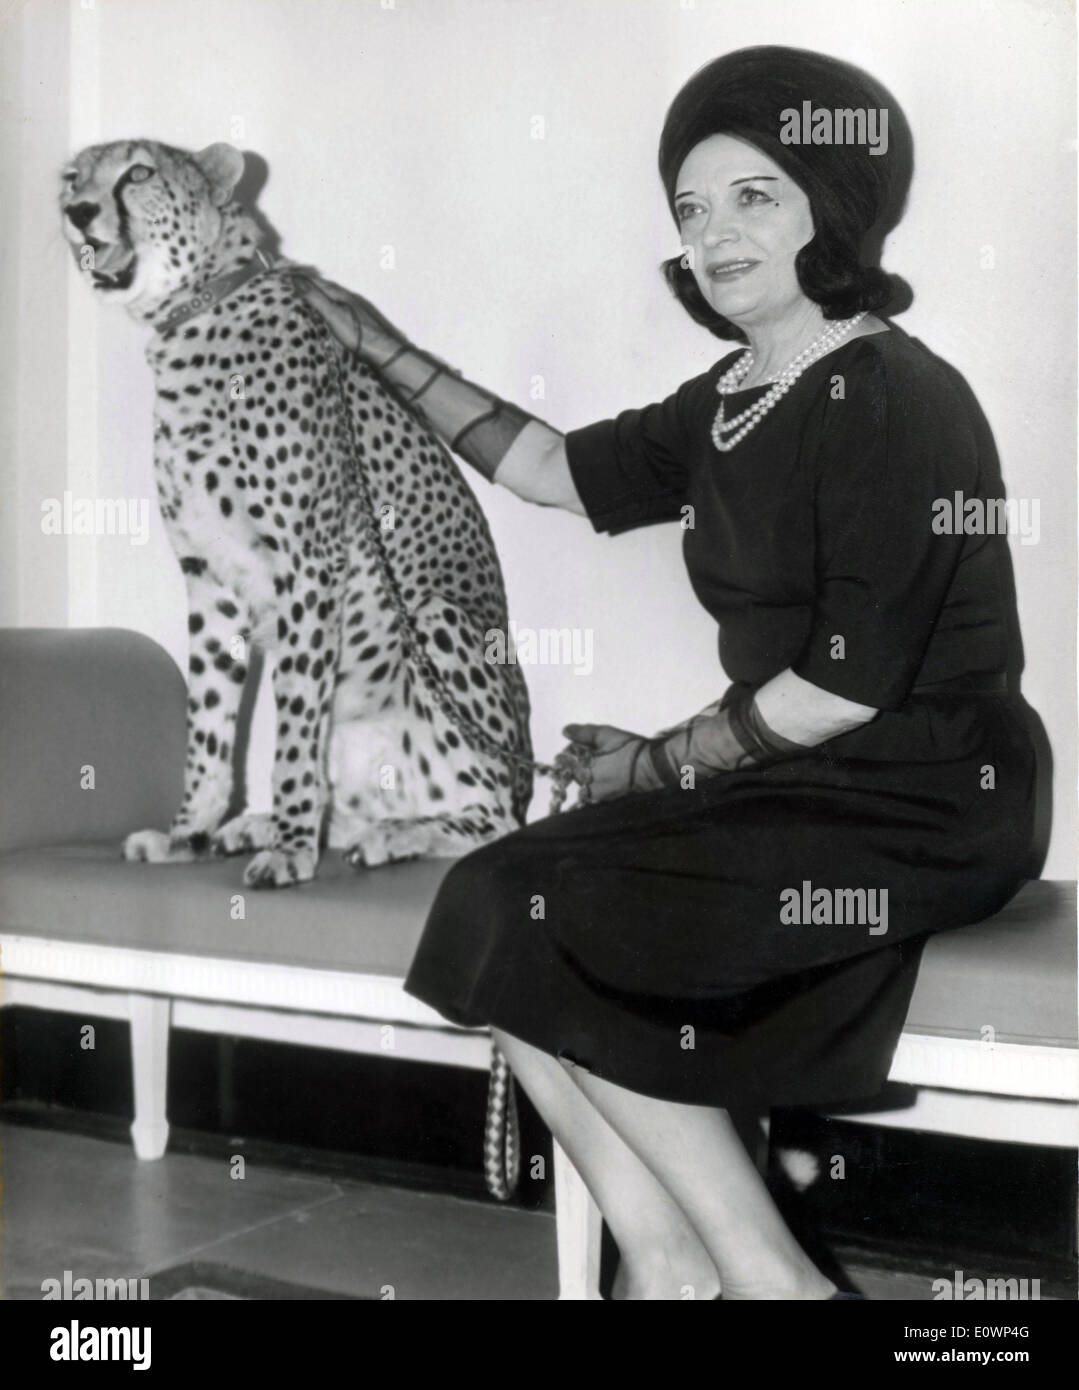 Oct. 25, 1963 - Hollywood, CA, U.S. - Screen vamp POLA NEGRI seen with three year old cheetah Kinna who will appear in the Walt - Stock Image